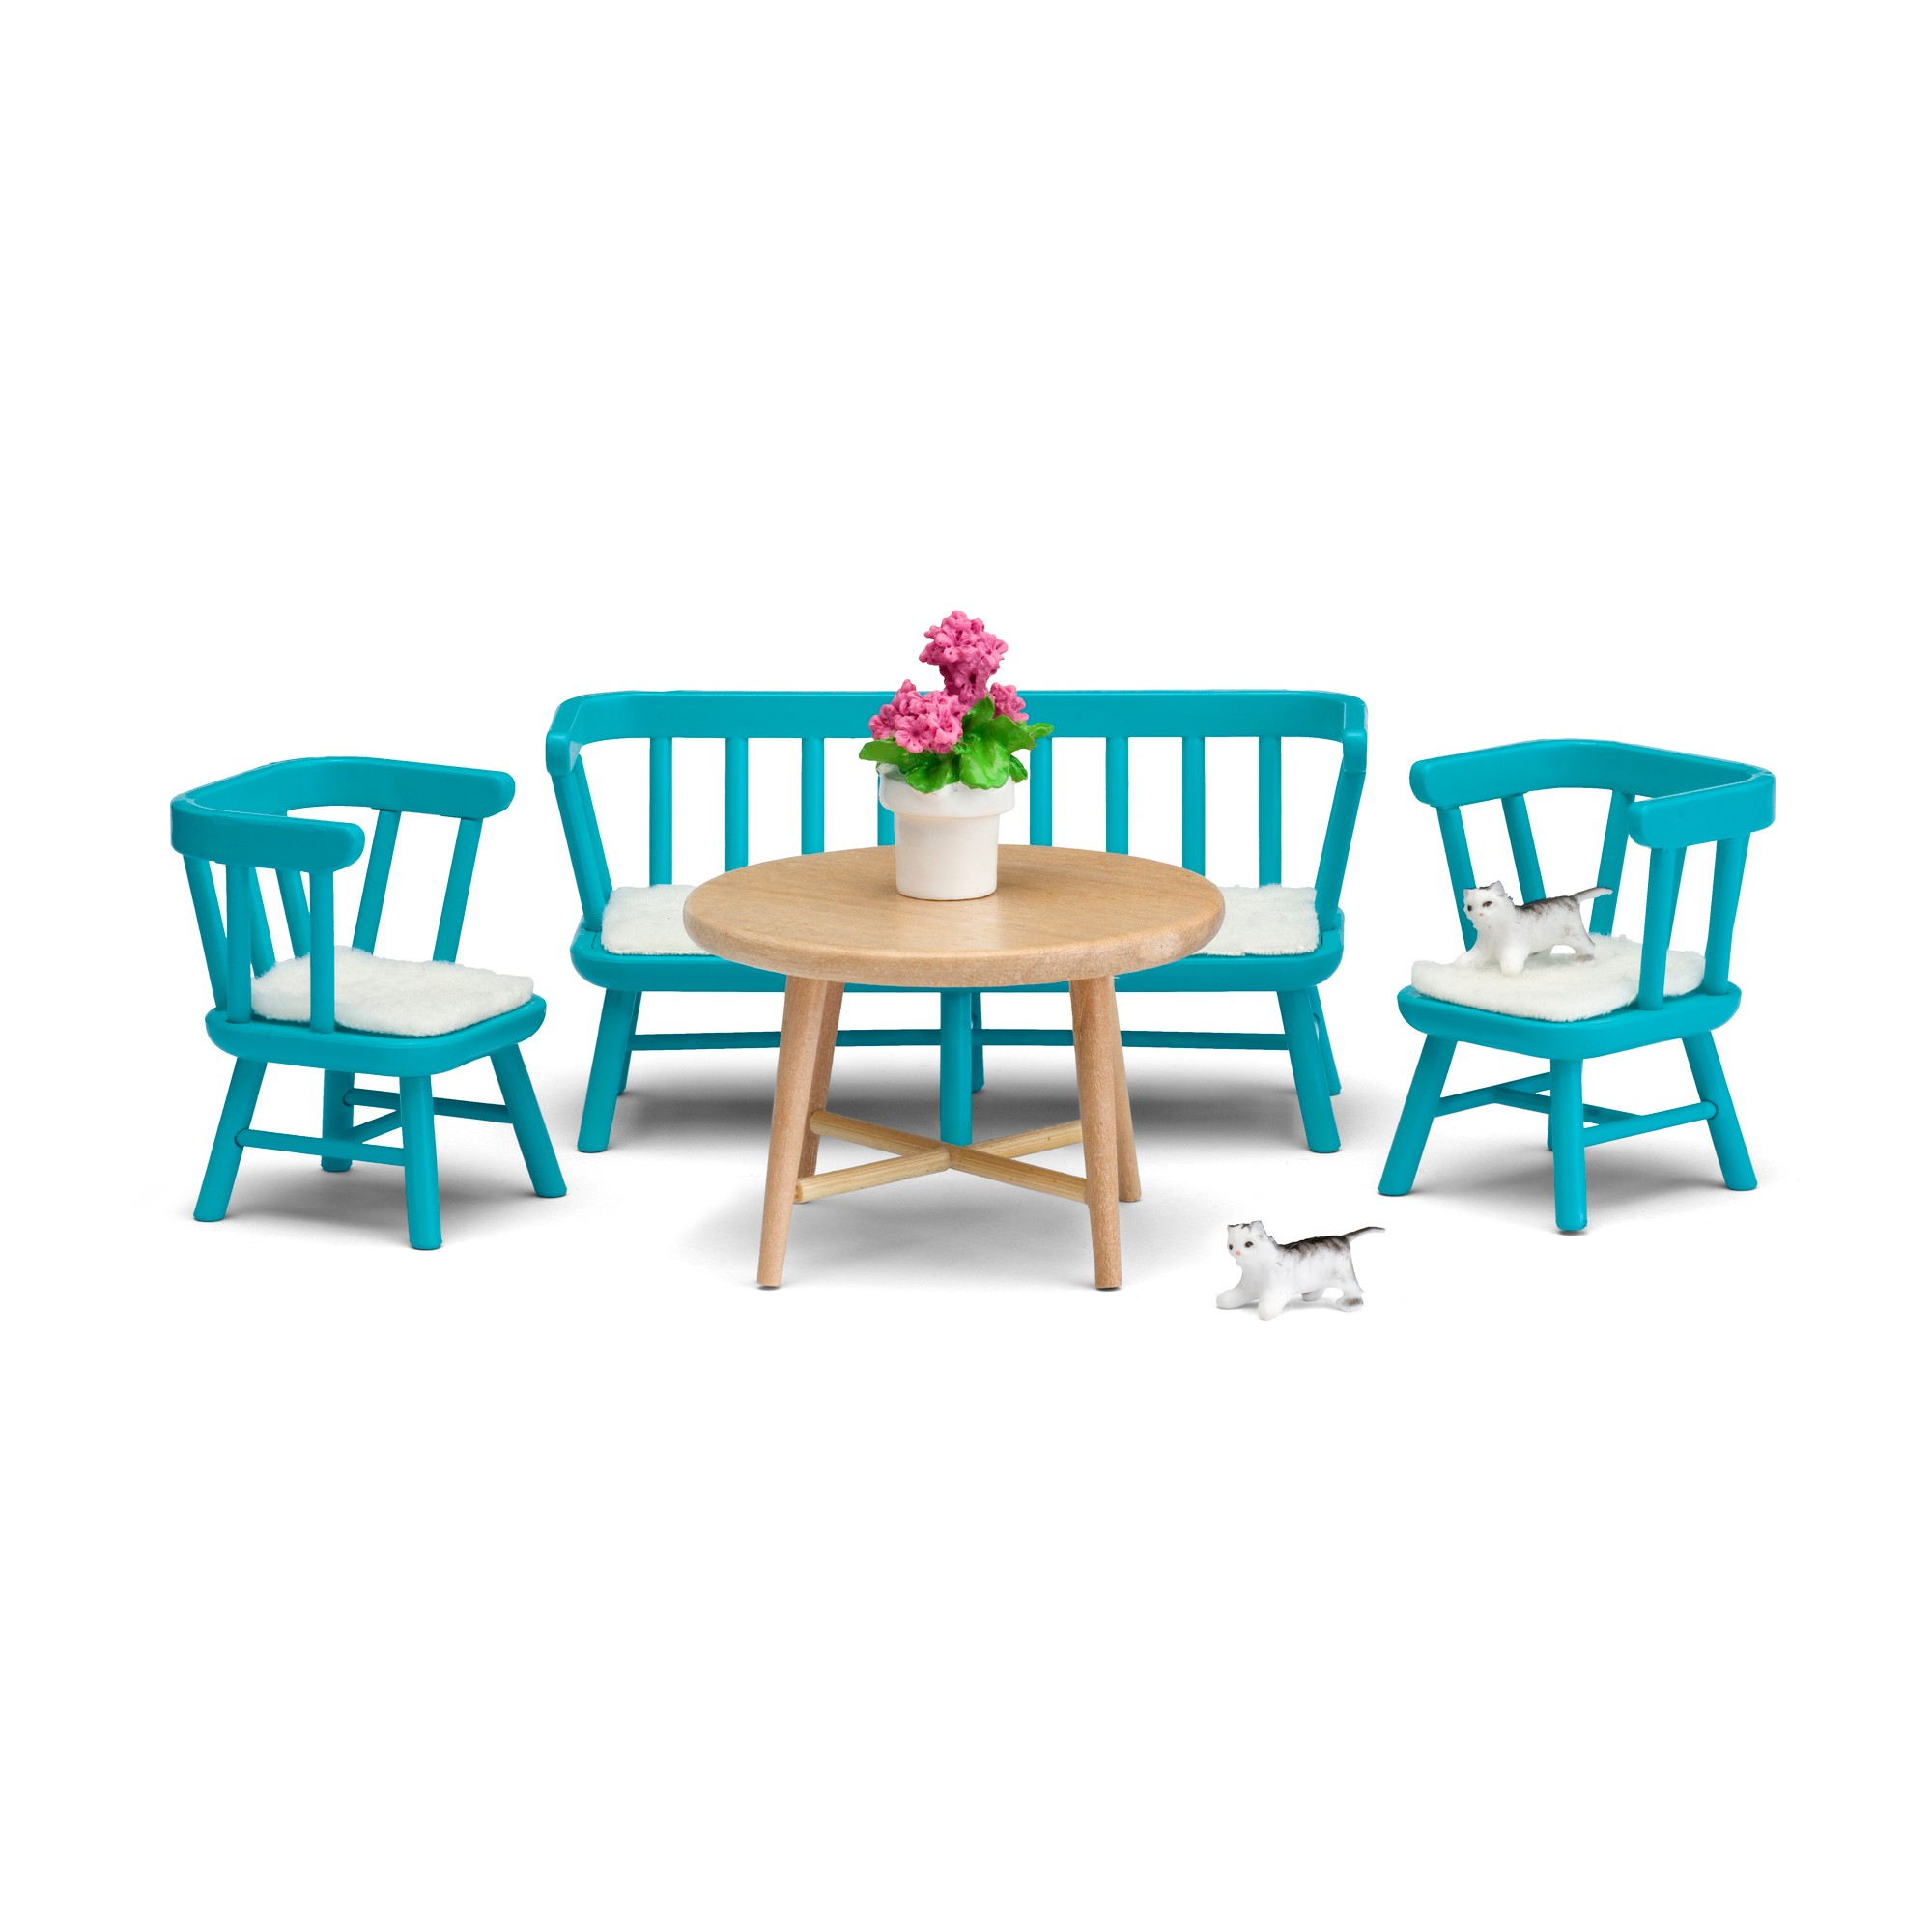 Lundby Kitchen Furniture, Doll Furniture | Products